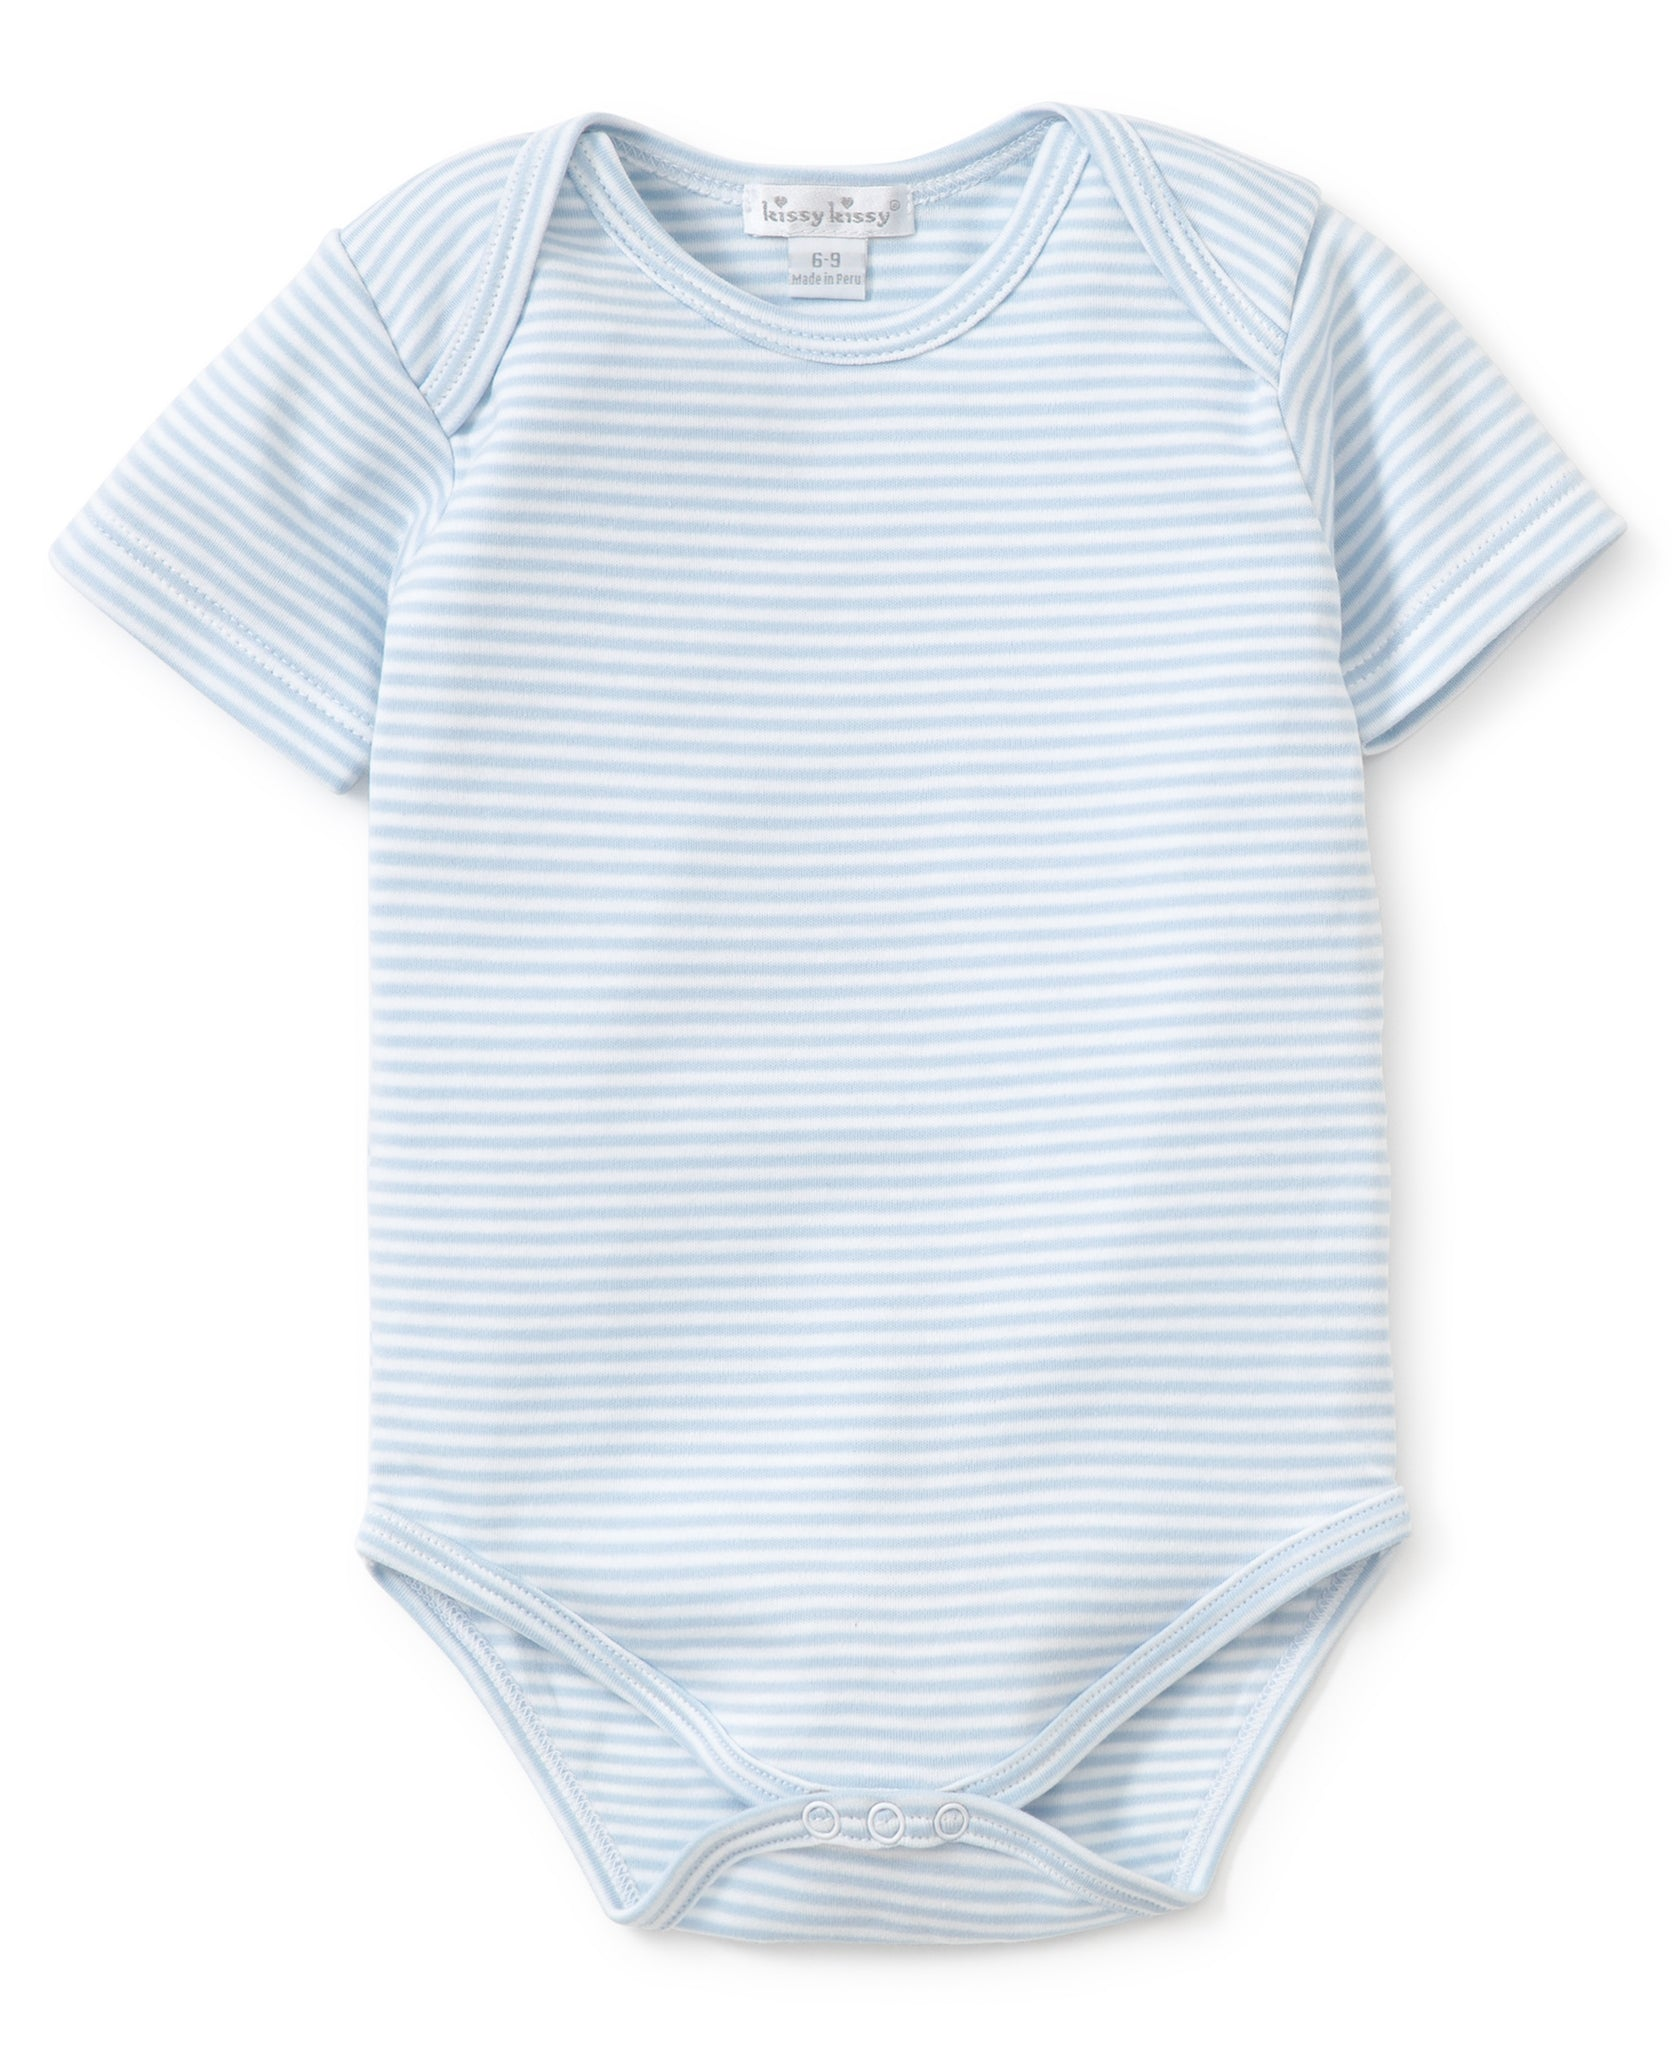 Onesie- Light Blue Stripes